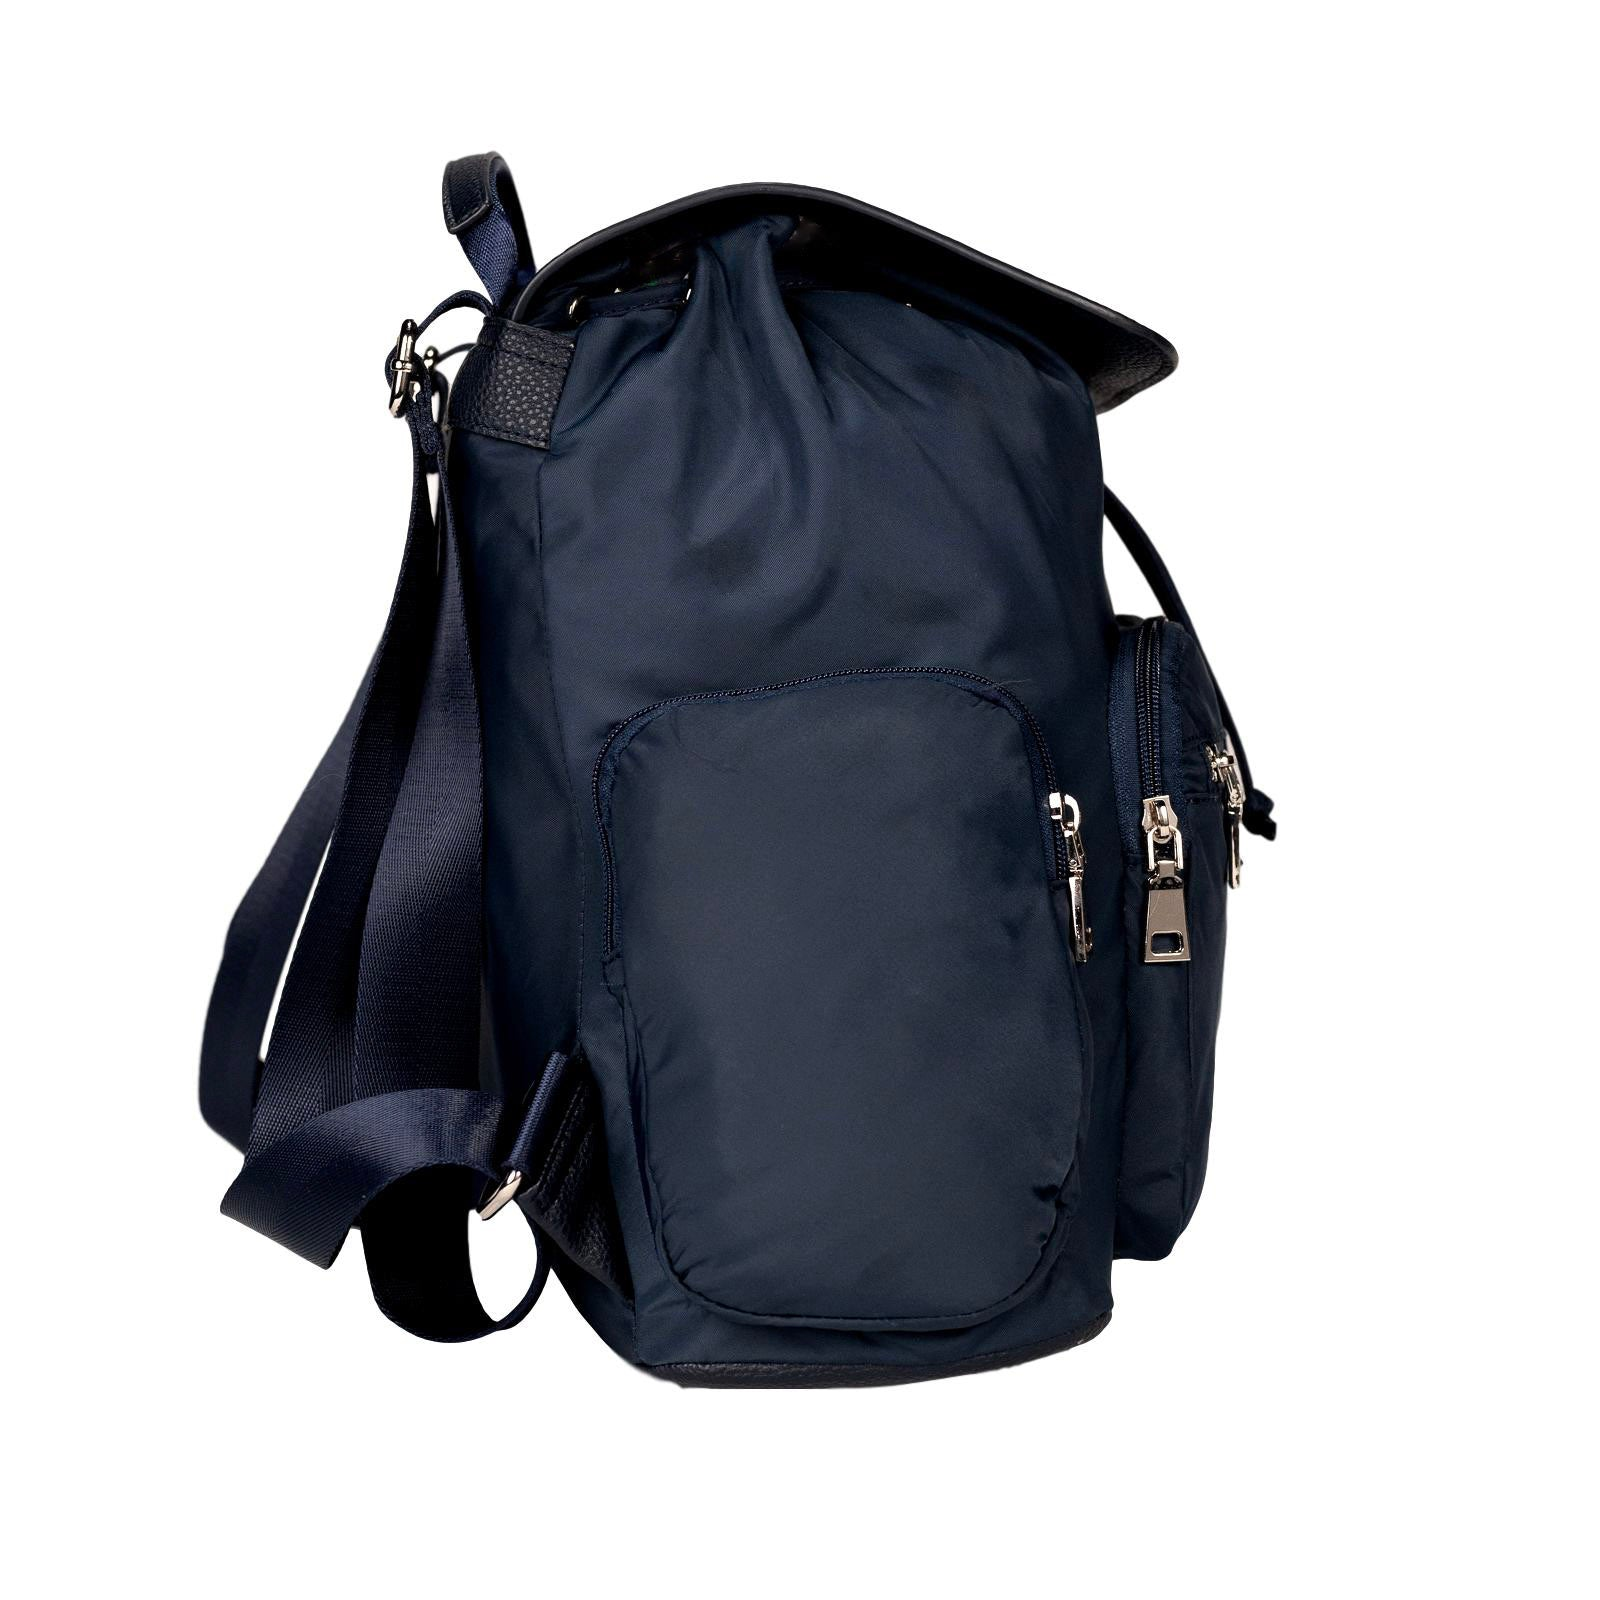 Mon Purse Nylon Hunter Rucksack in Navy